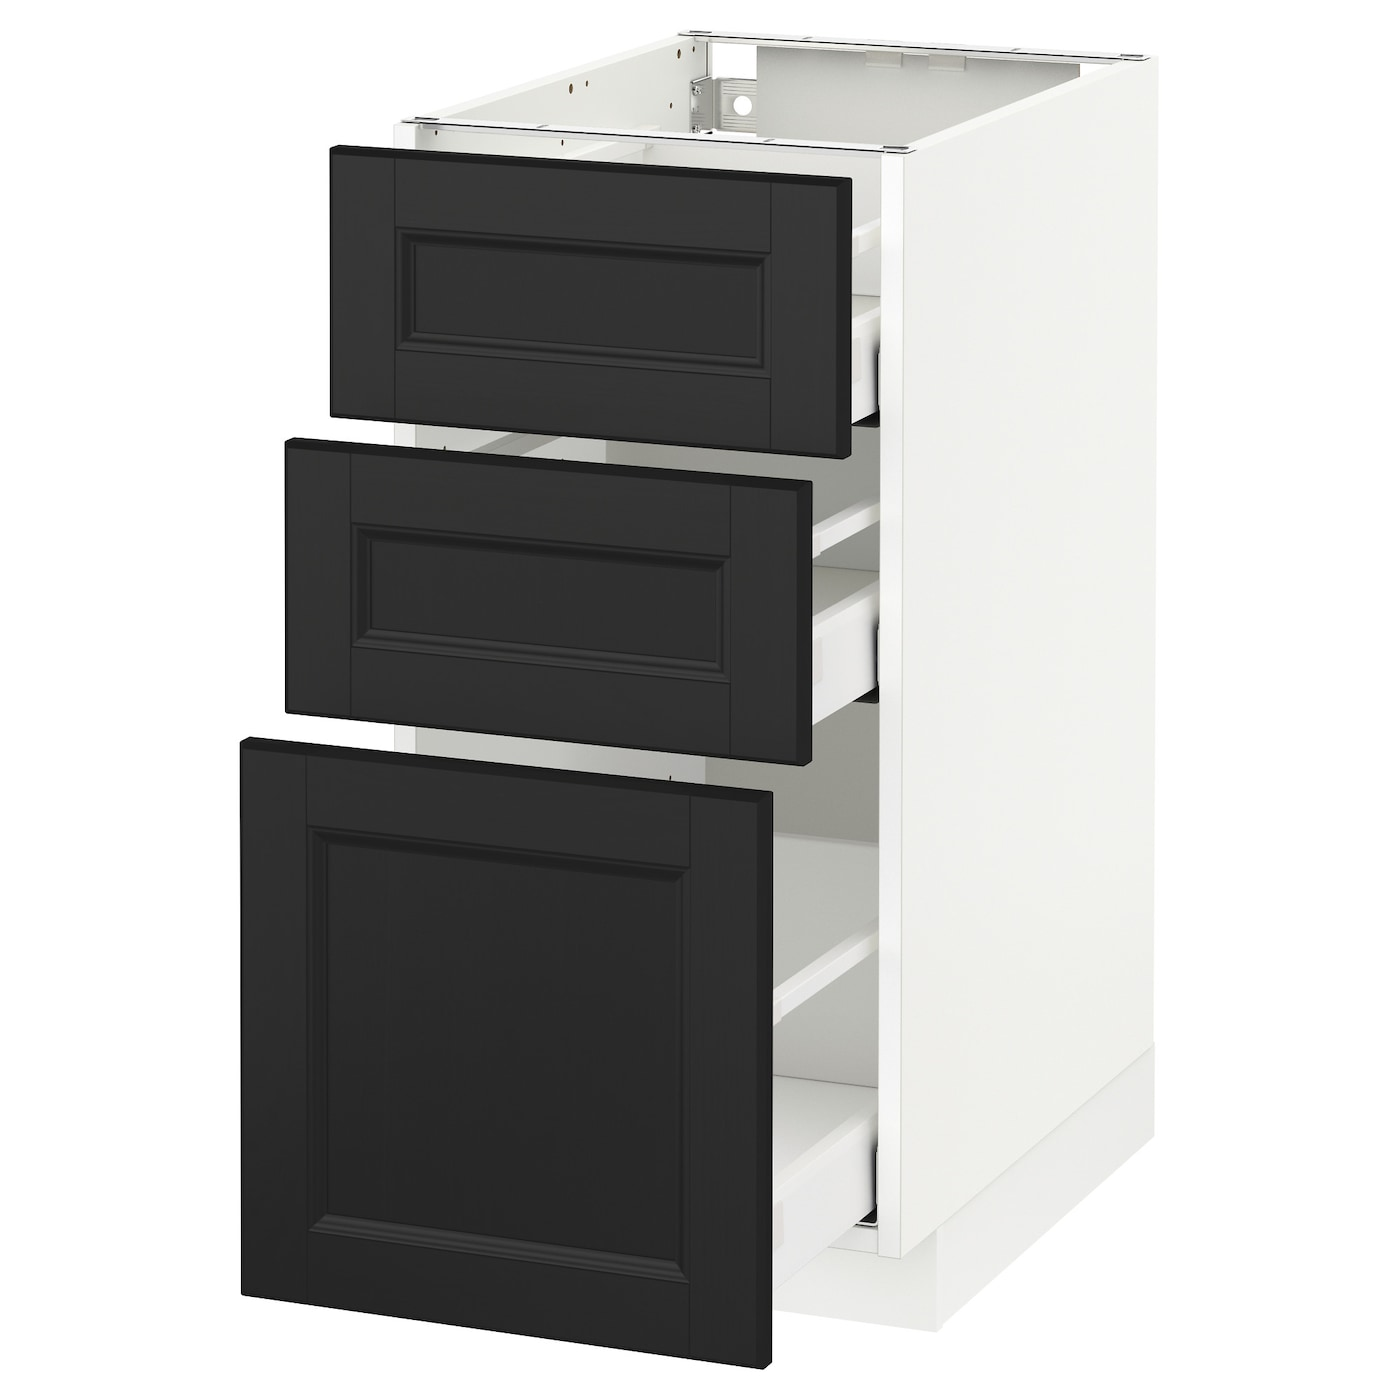 Metod Maximera Base Cabinet With 3 Drawers White Laxarby Black Brown 40x60 Cm Ikea